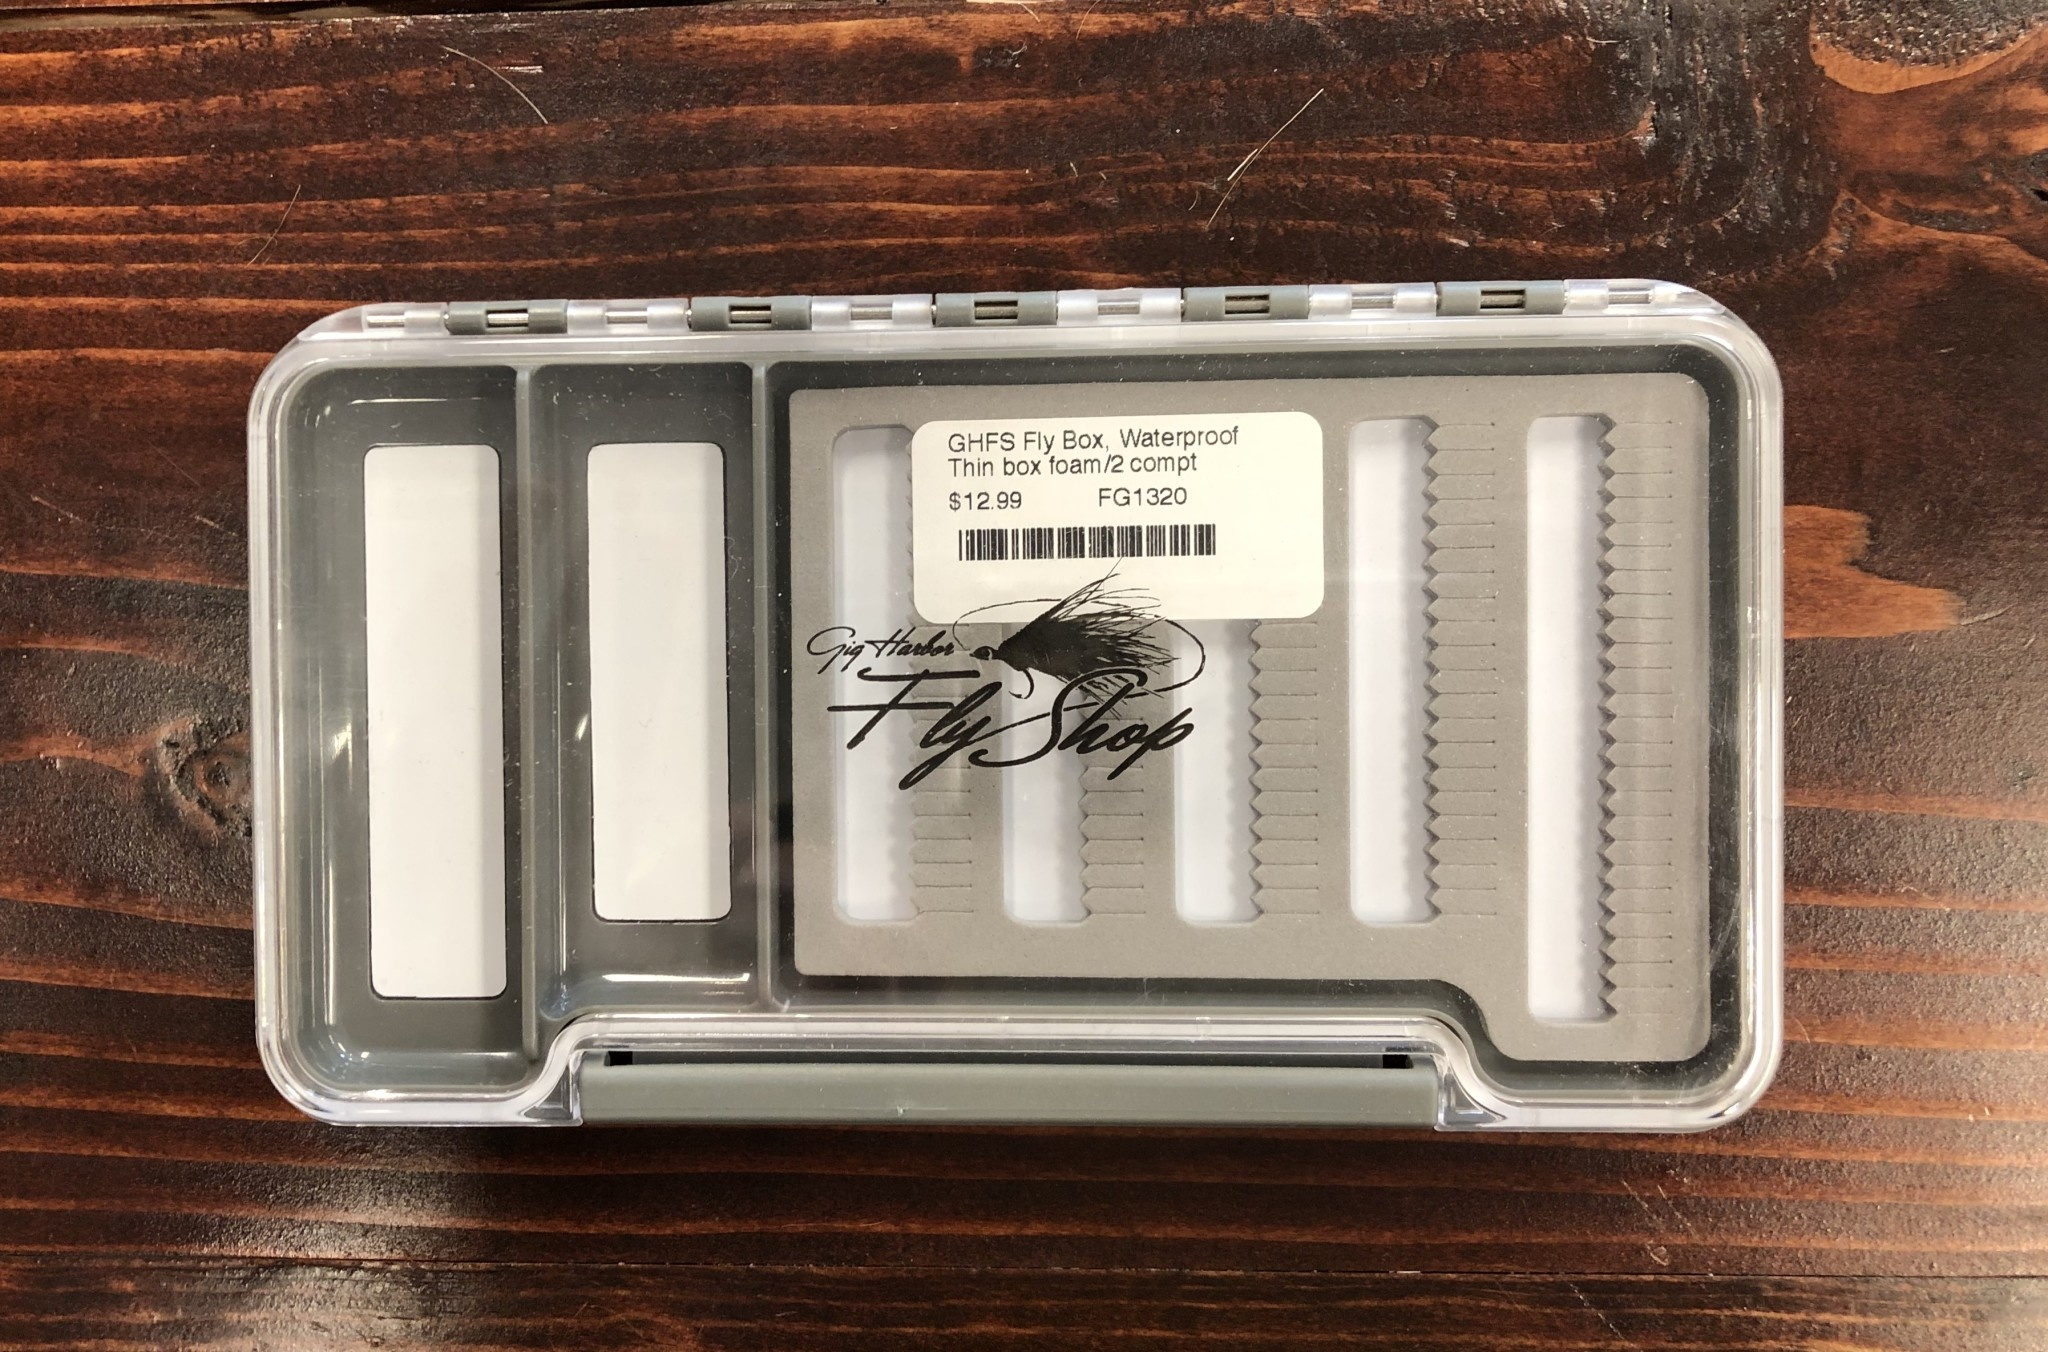 New Phase GHFS Fly Box, Waterproof Thin box foam/2 compt